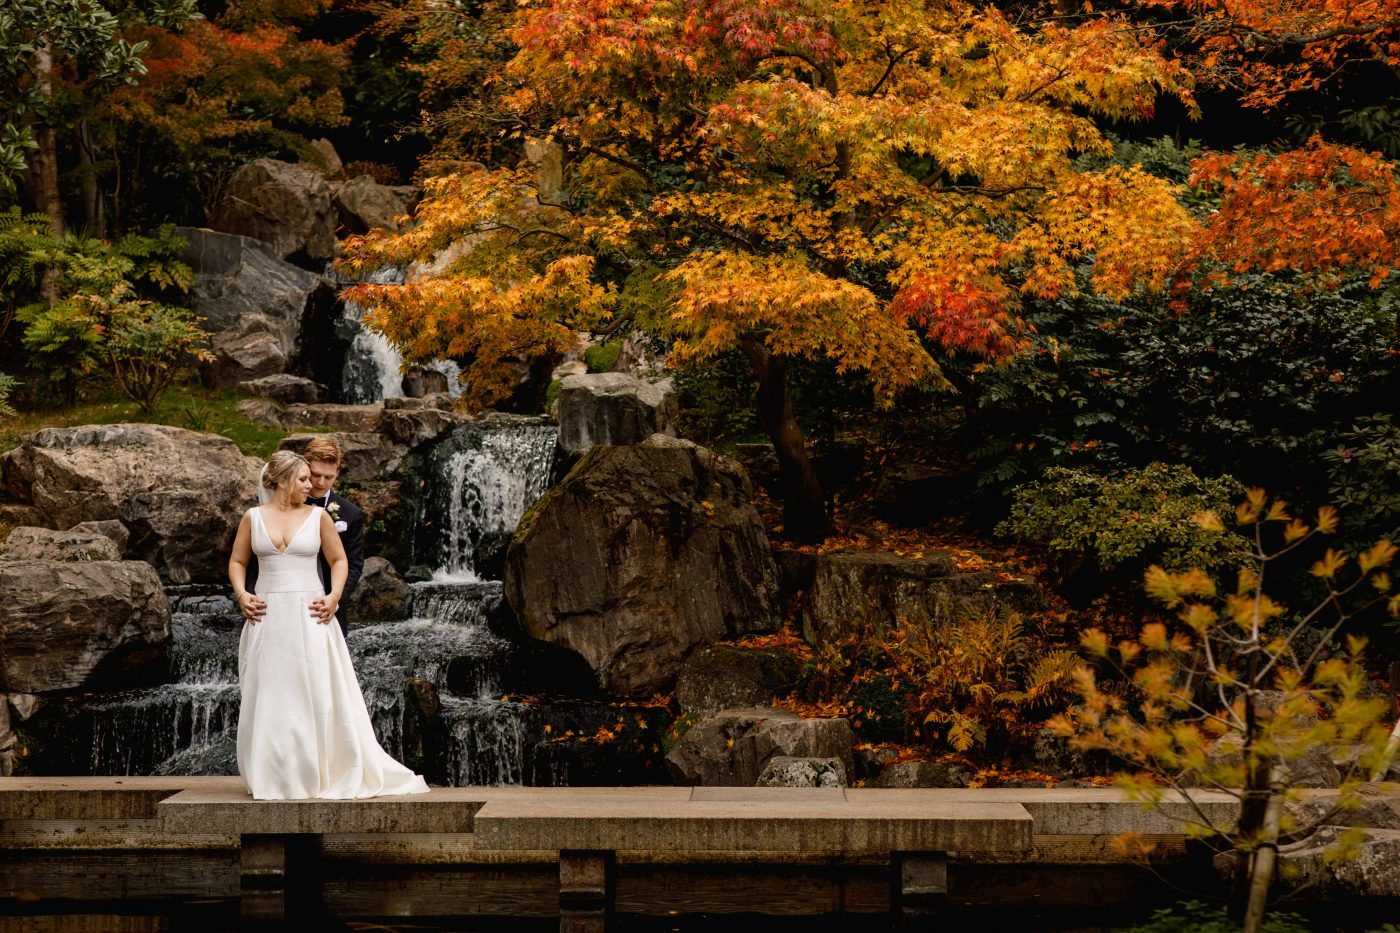 Wedding Photography by Damion Mower Photography